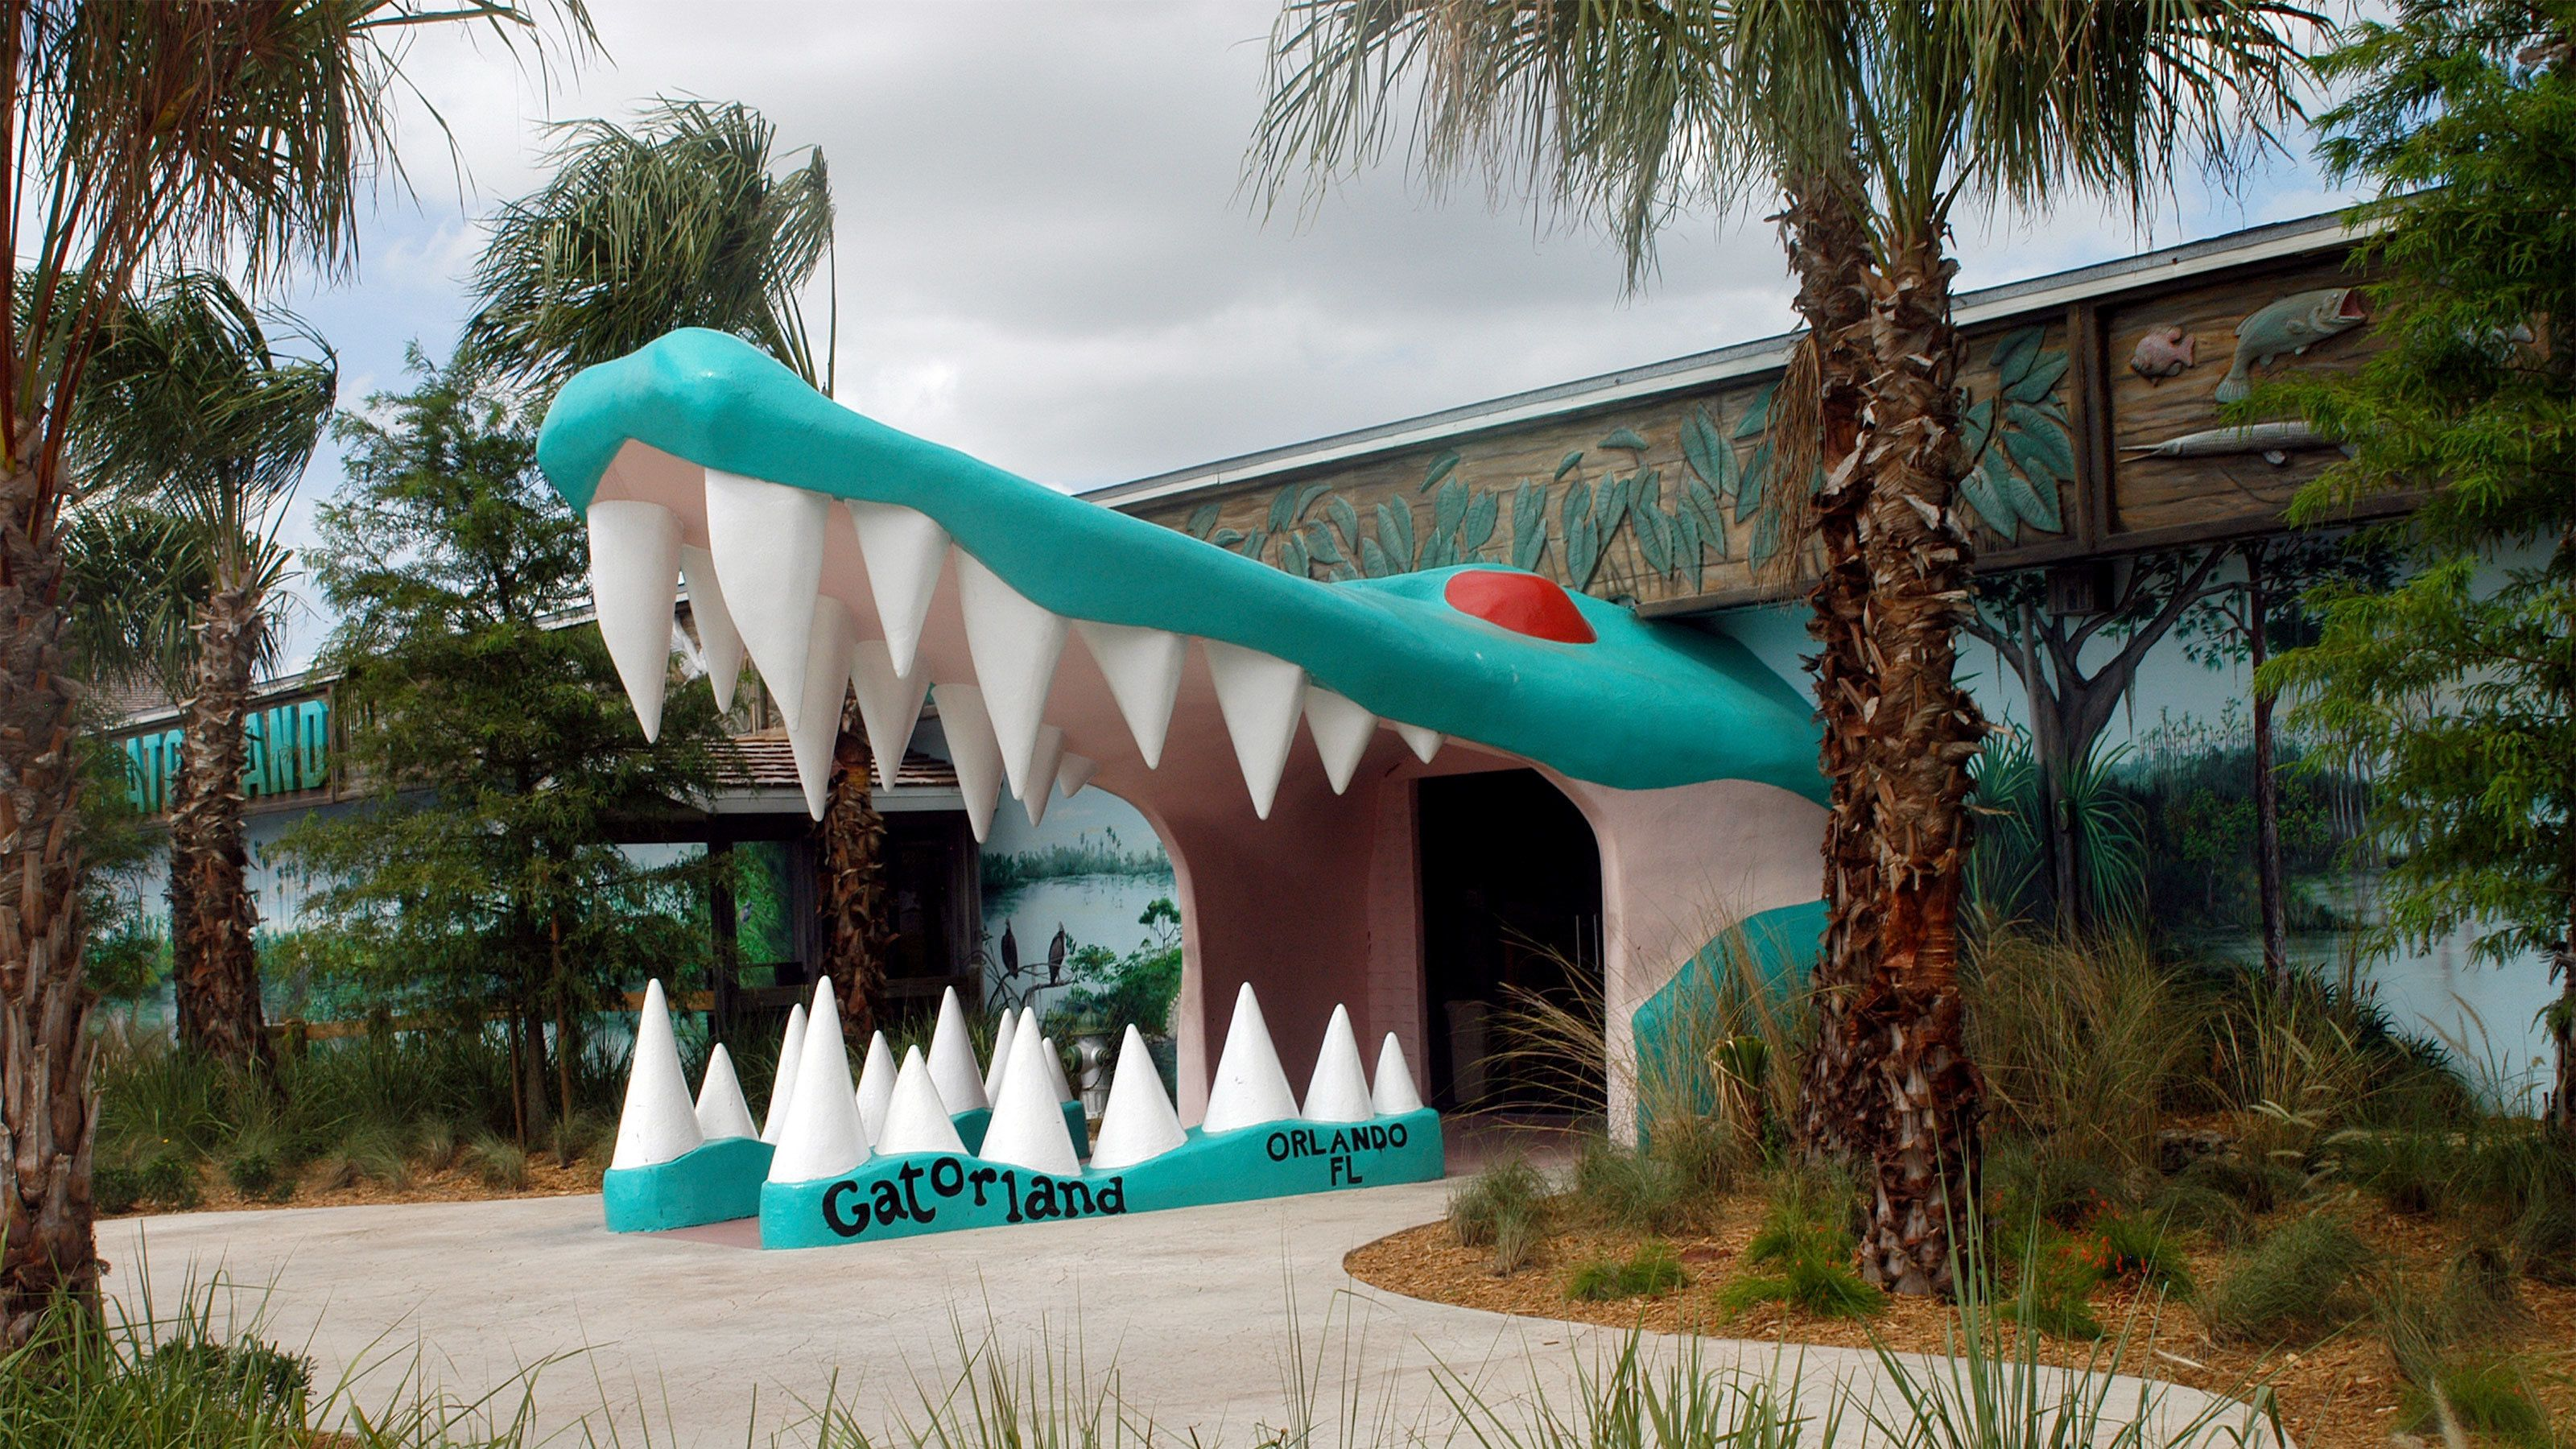 Alligator mouth-shaped entrance to building at Gatorland in Orlando